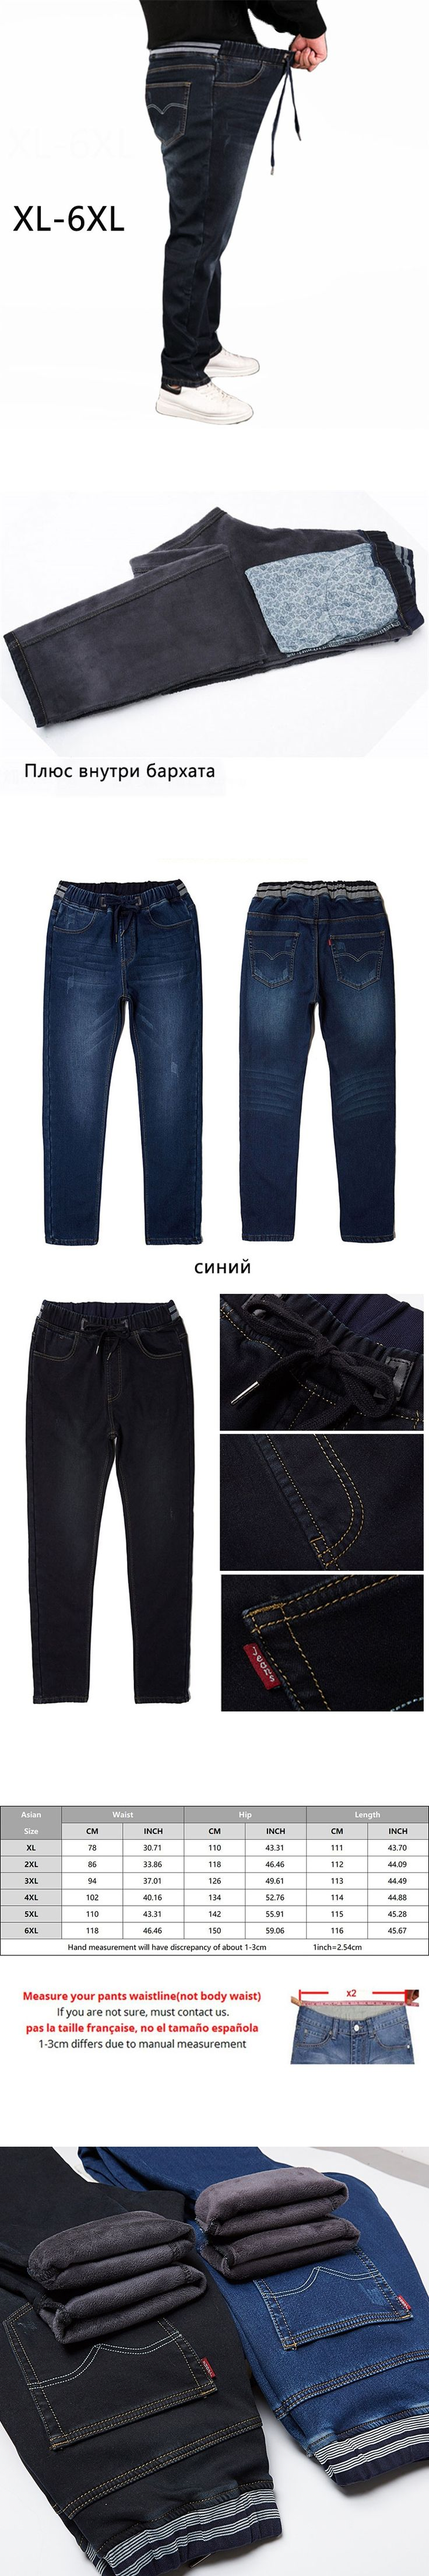 Big Size 4Xl 5Xl 6Xl Comfortable Jeans For Men Elastic Band Jeans Cotton Slim Straight Trousers Winter Thickening black Jeans